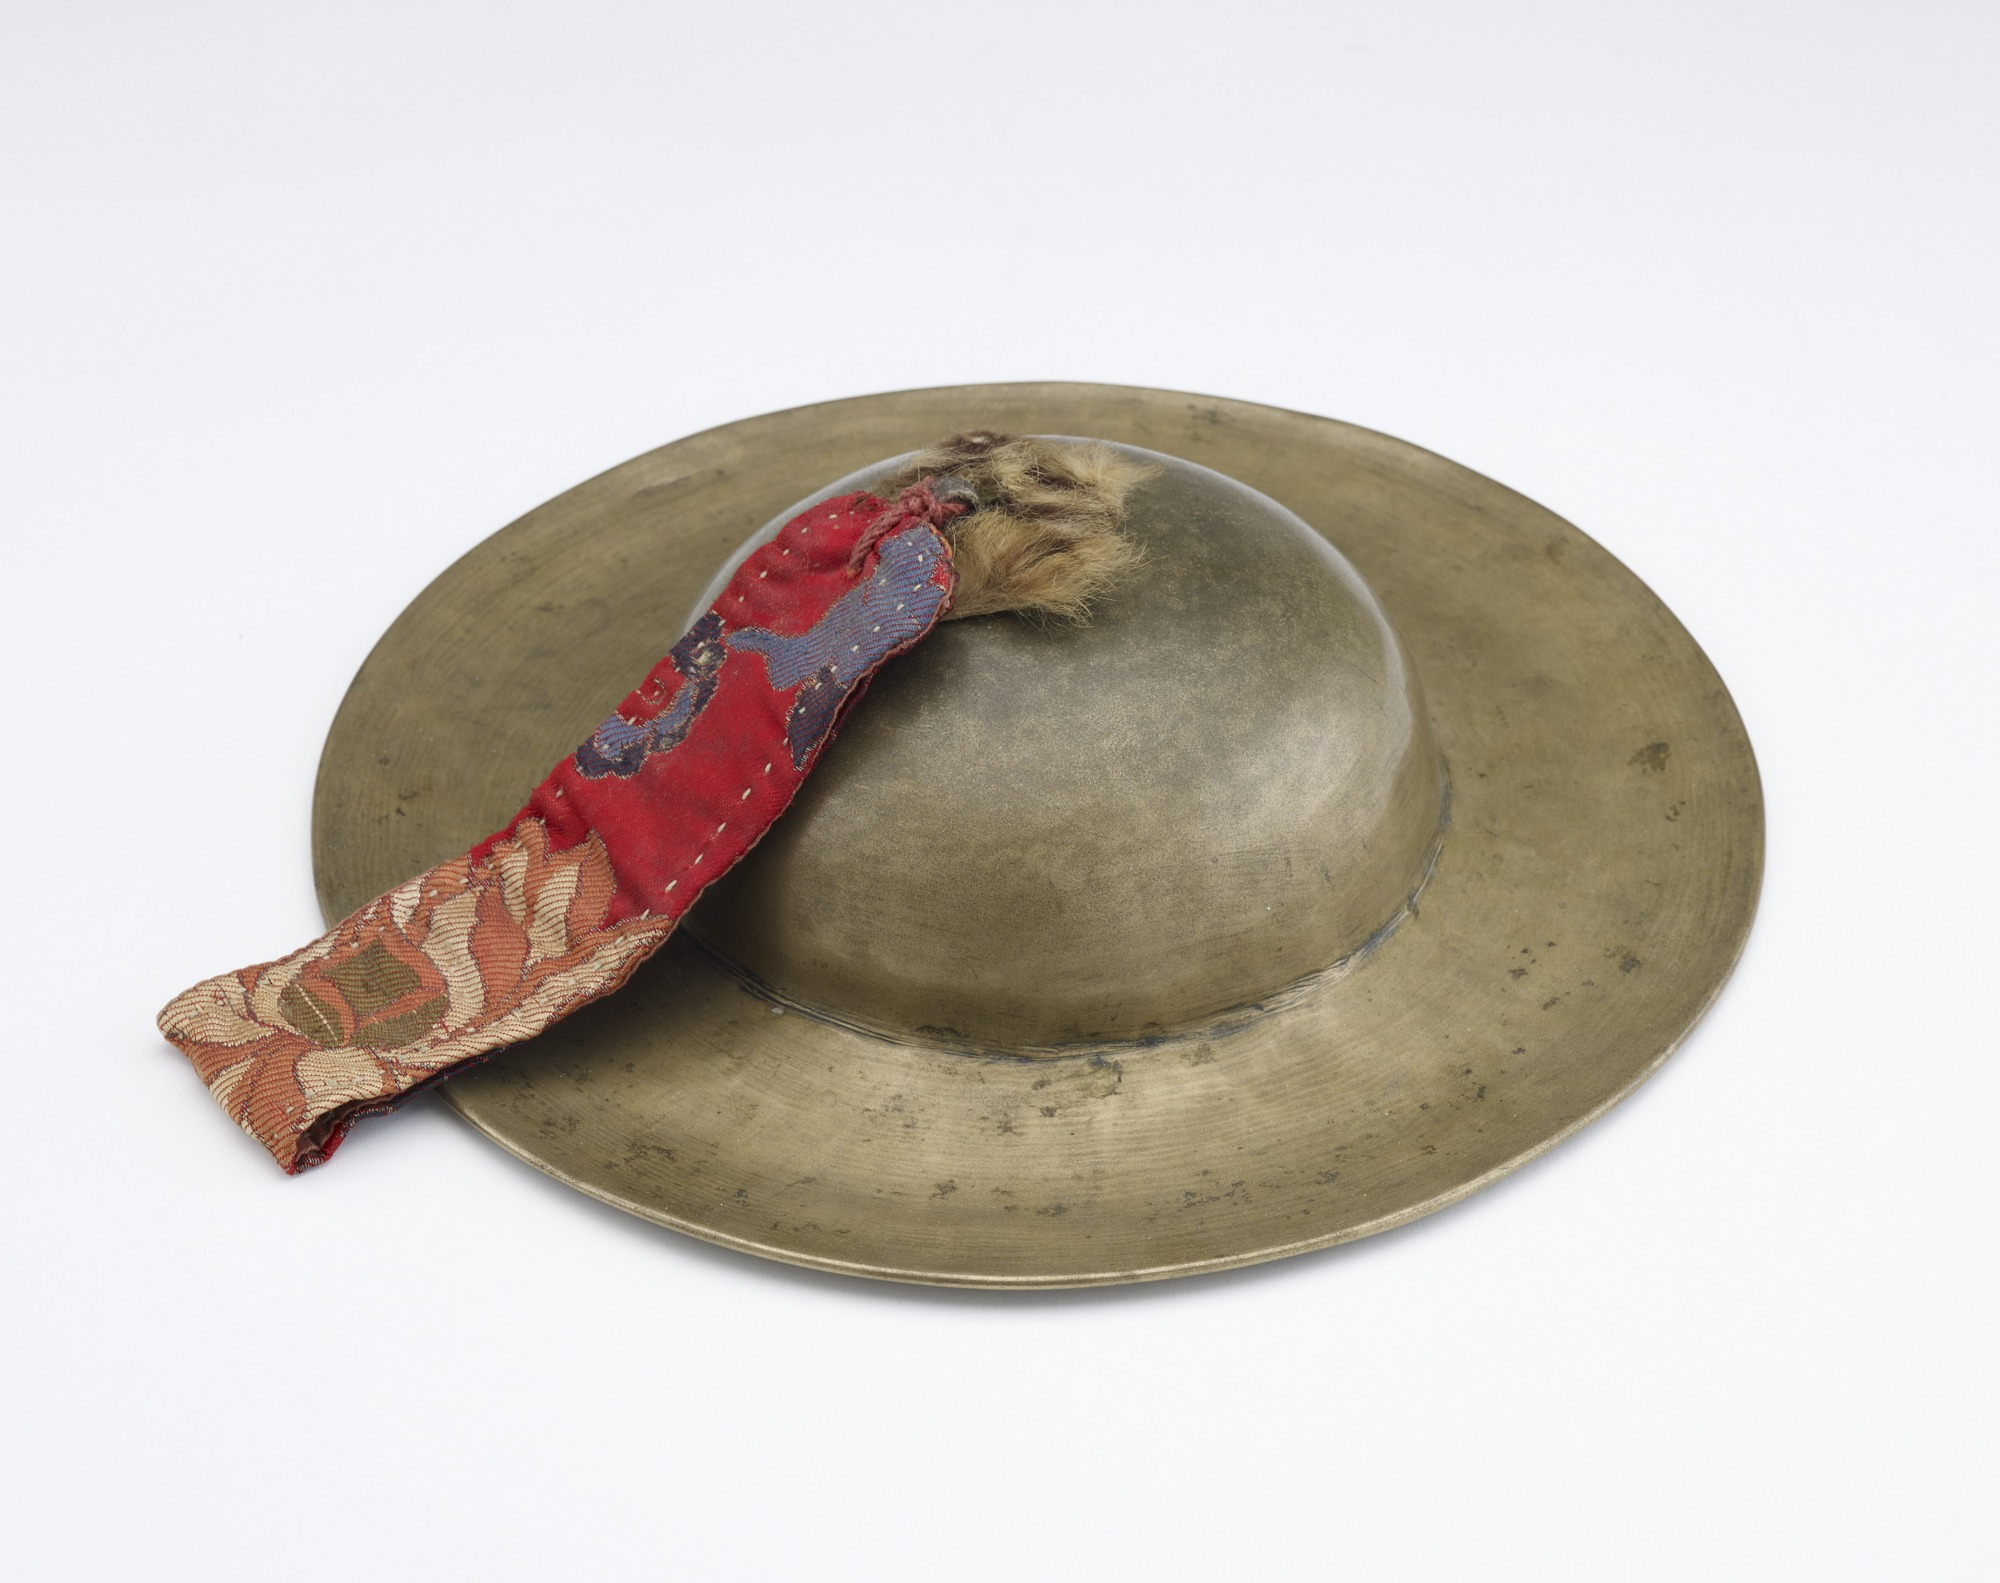 Pair of Small Cymbals with Carrying Case